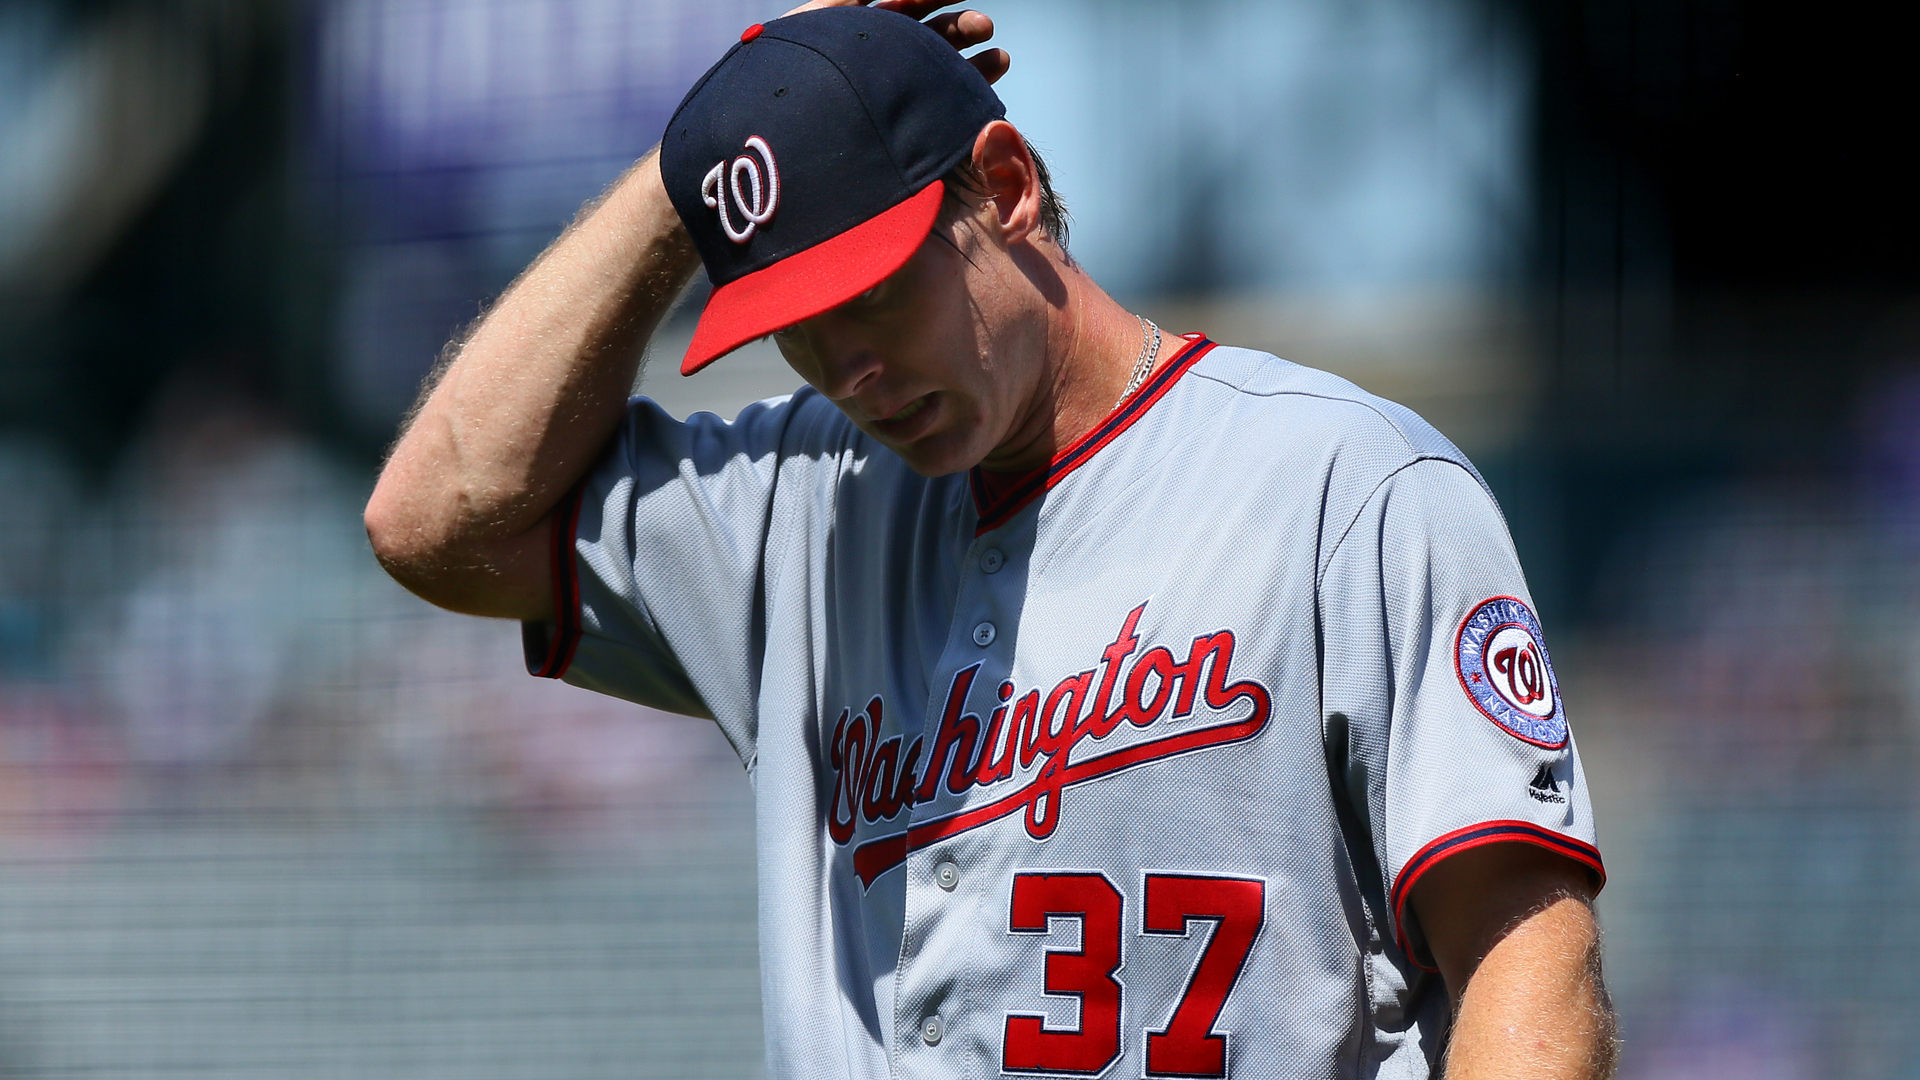 Stephen Strasburg exited Sunday's start with an apparent injury